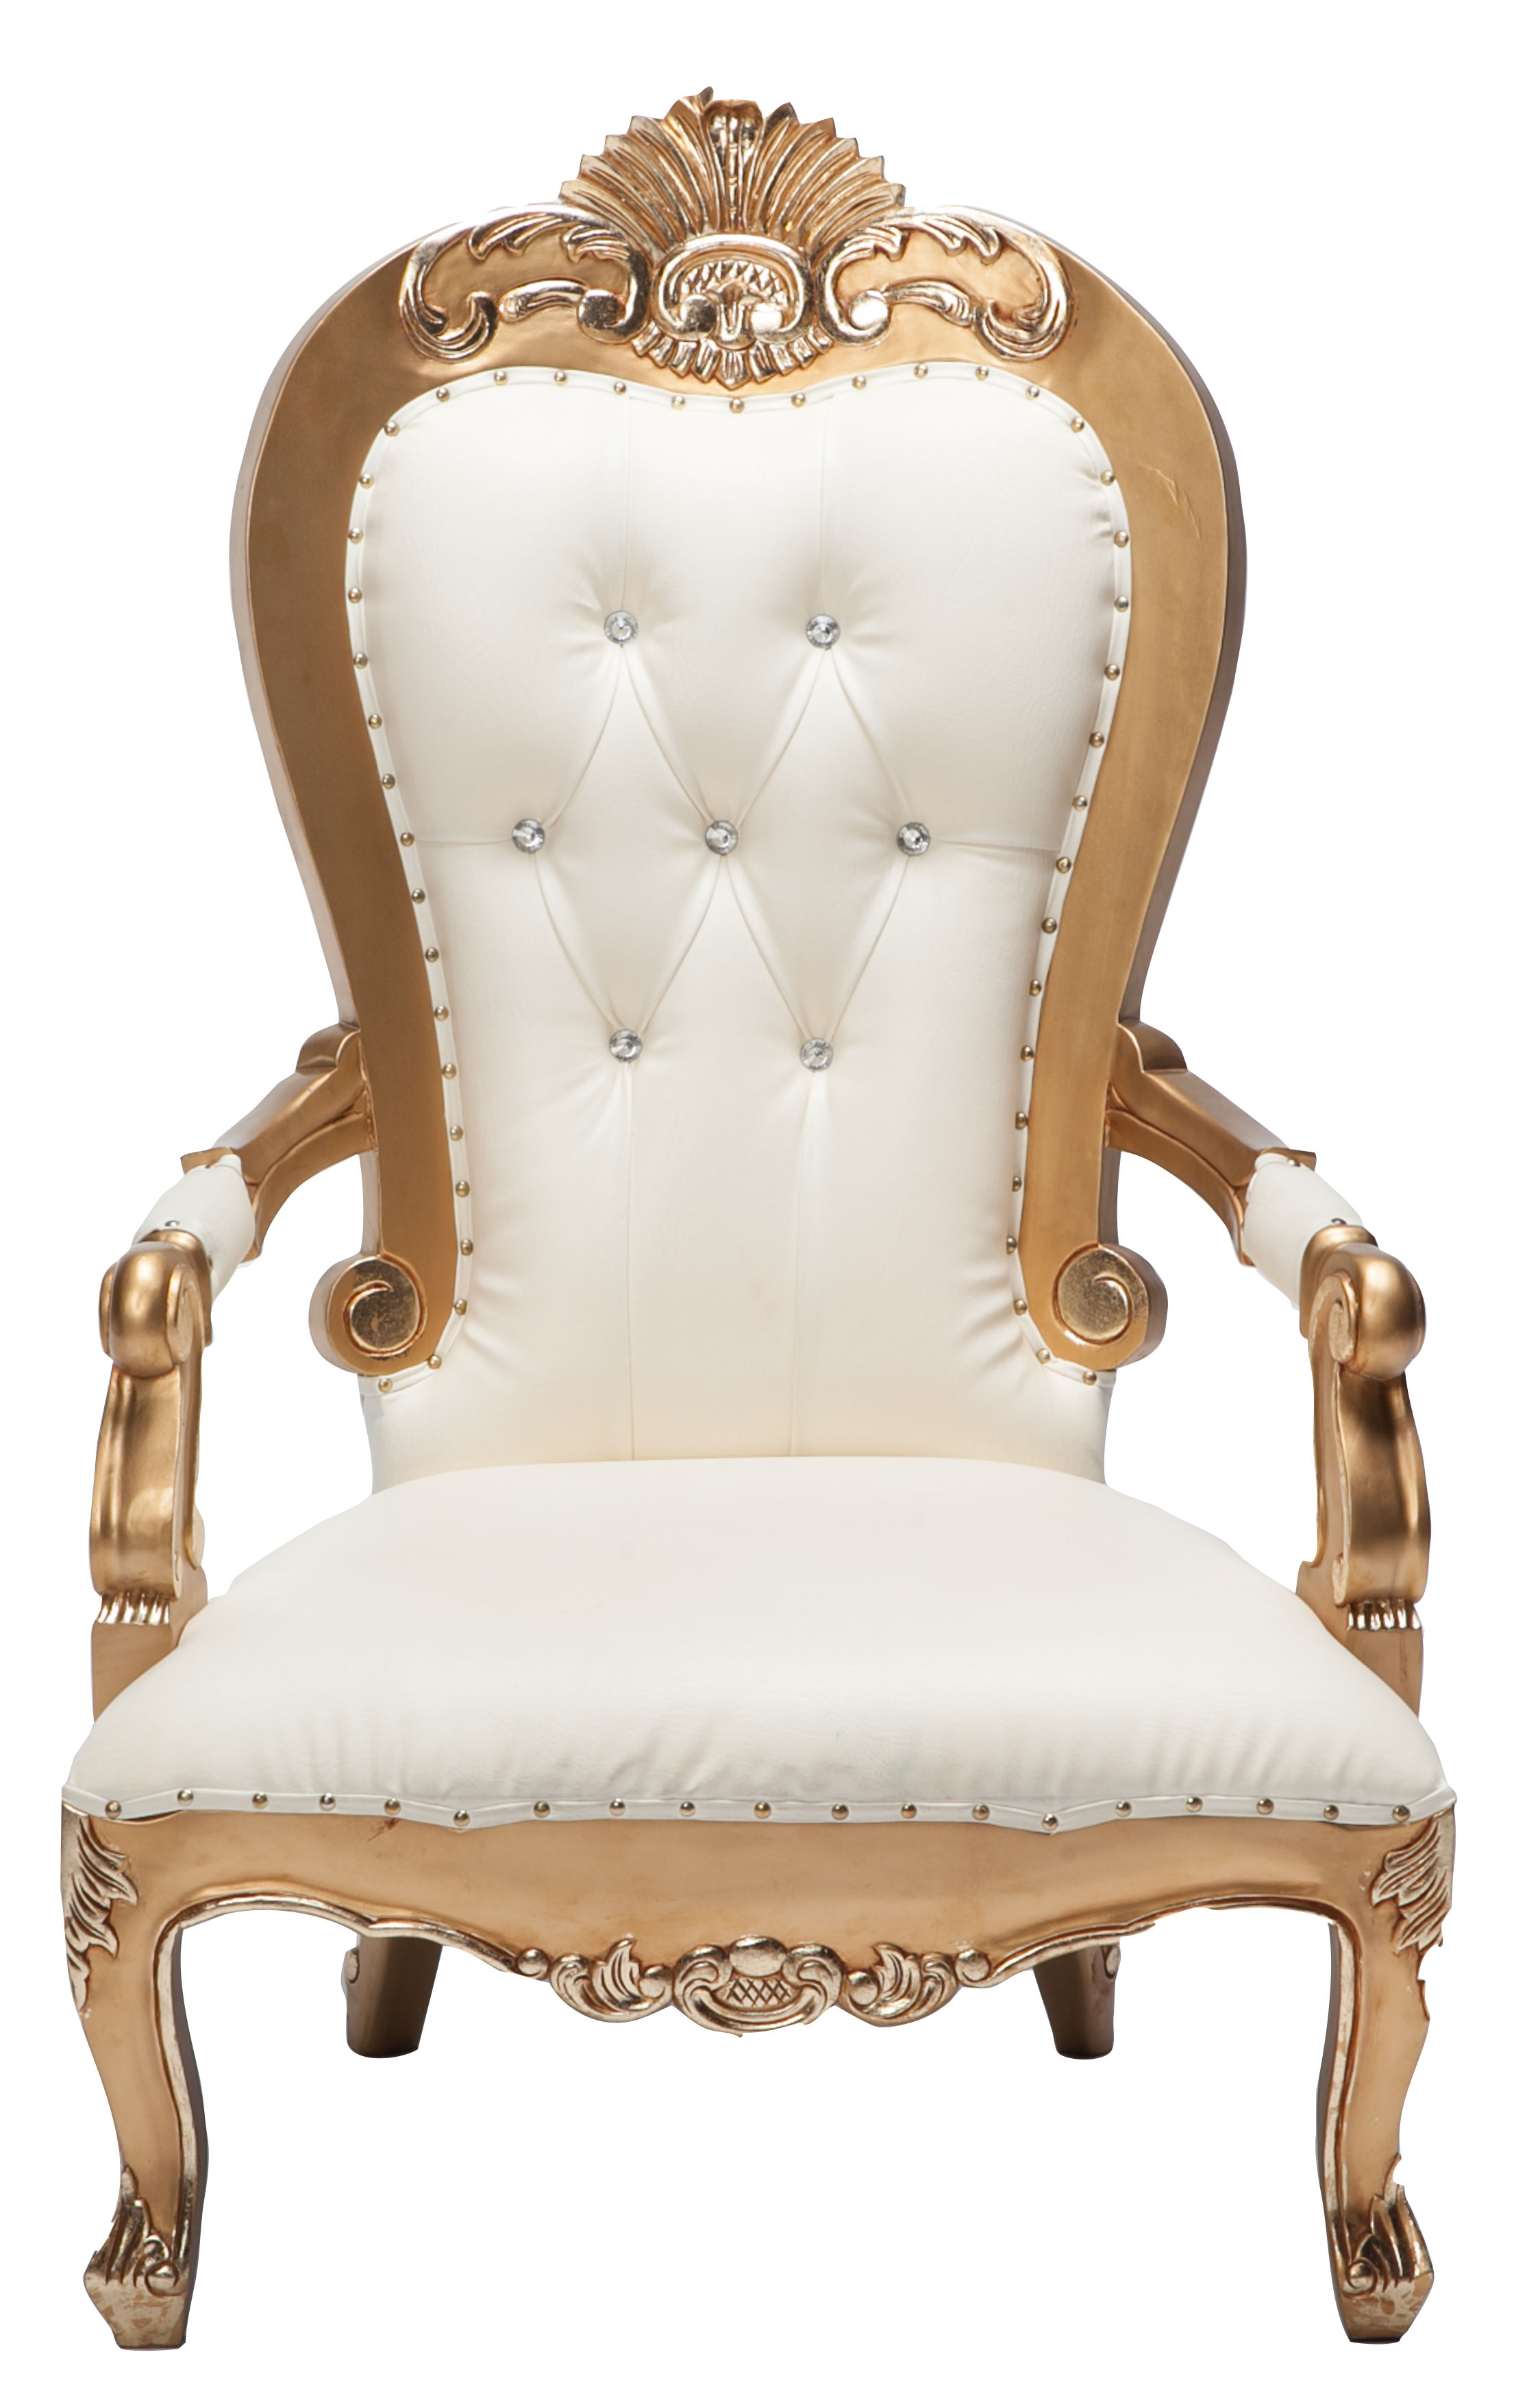 Royal Chair Rental Event Rentals Event Furnishings Special Events Furniture